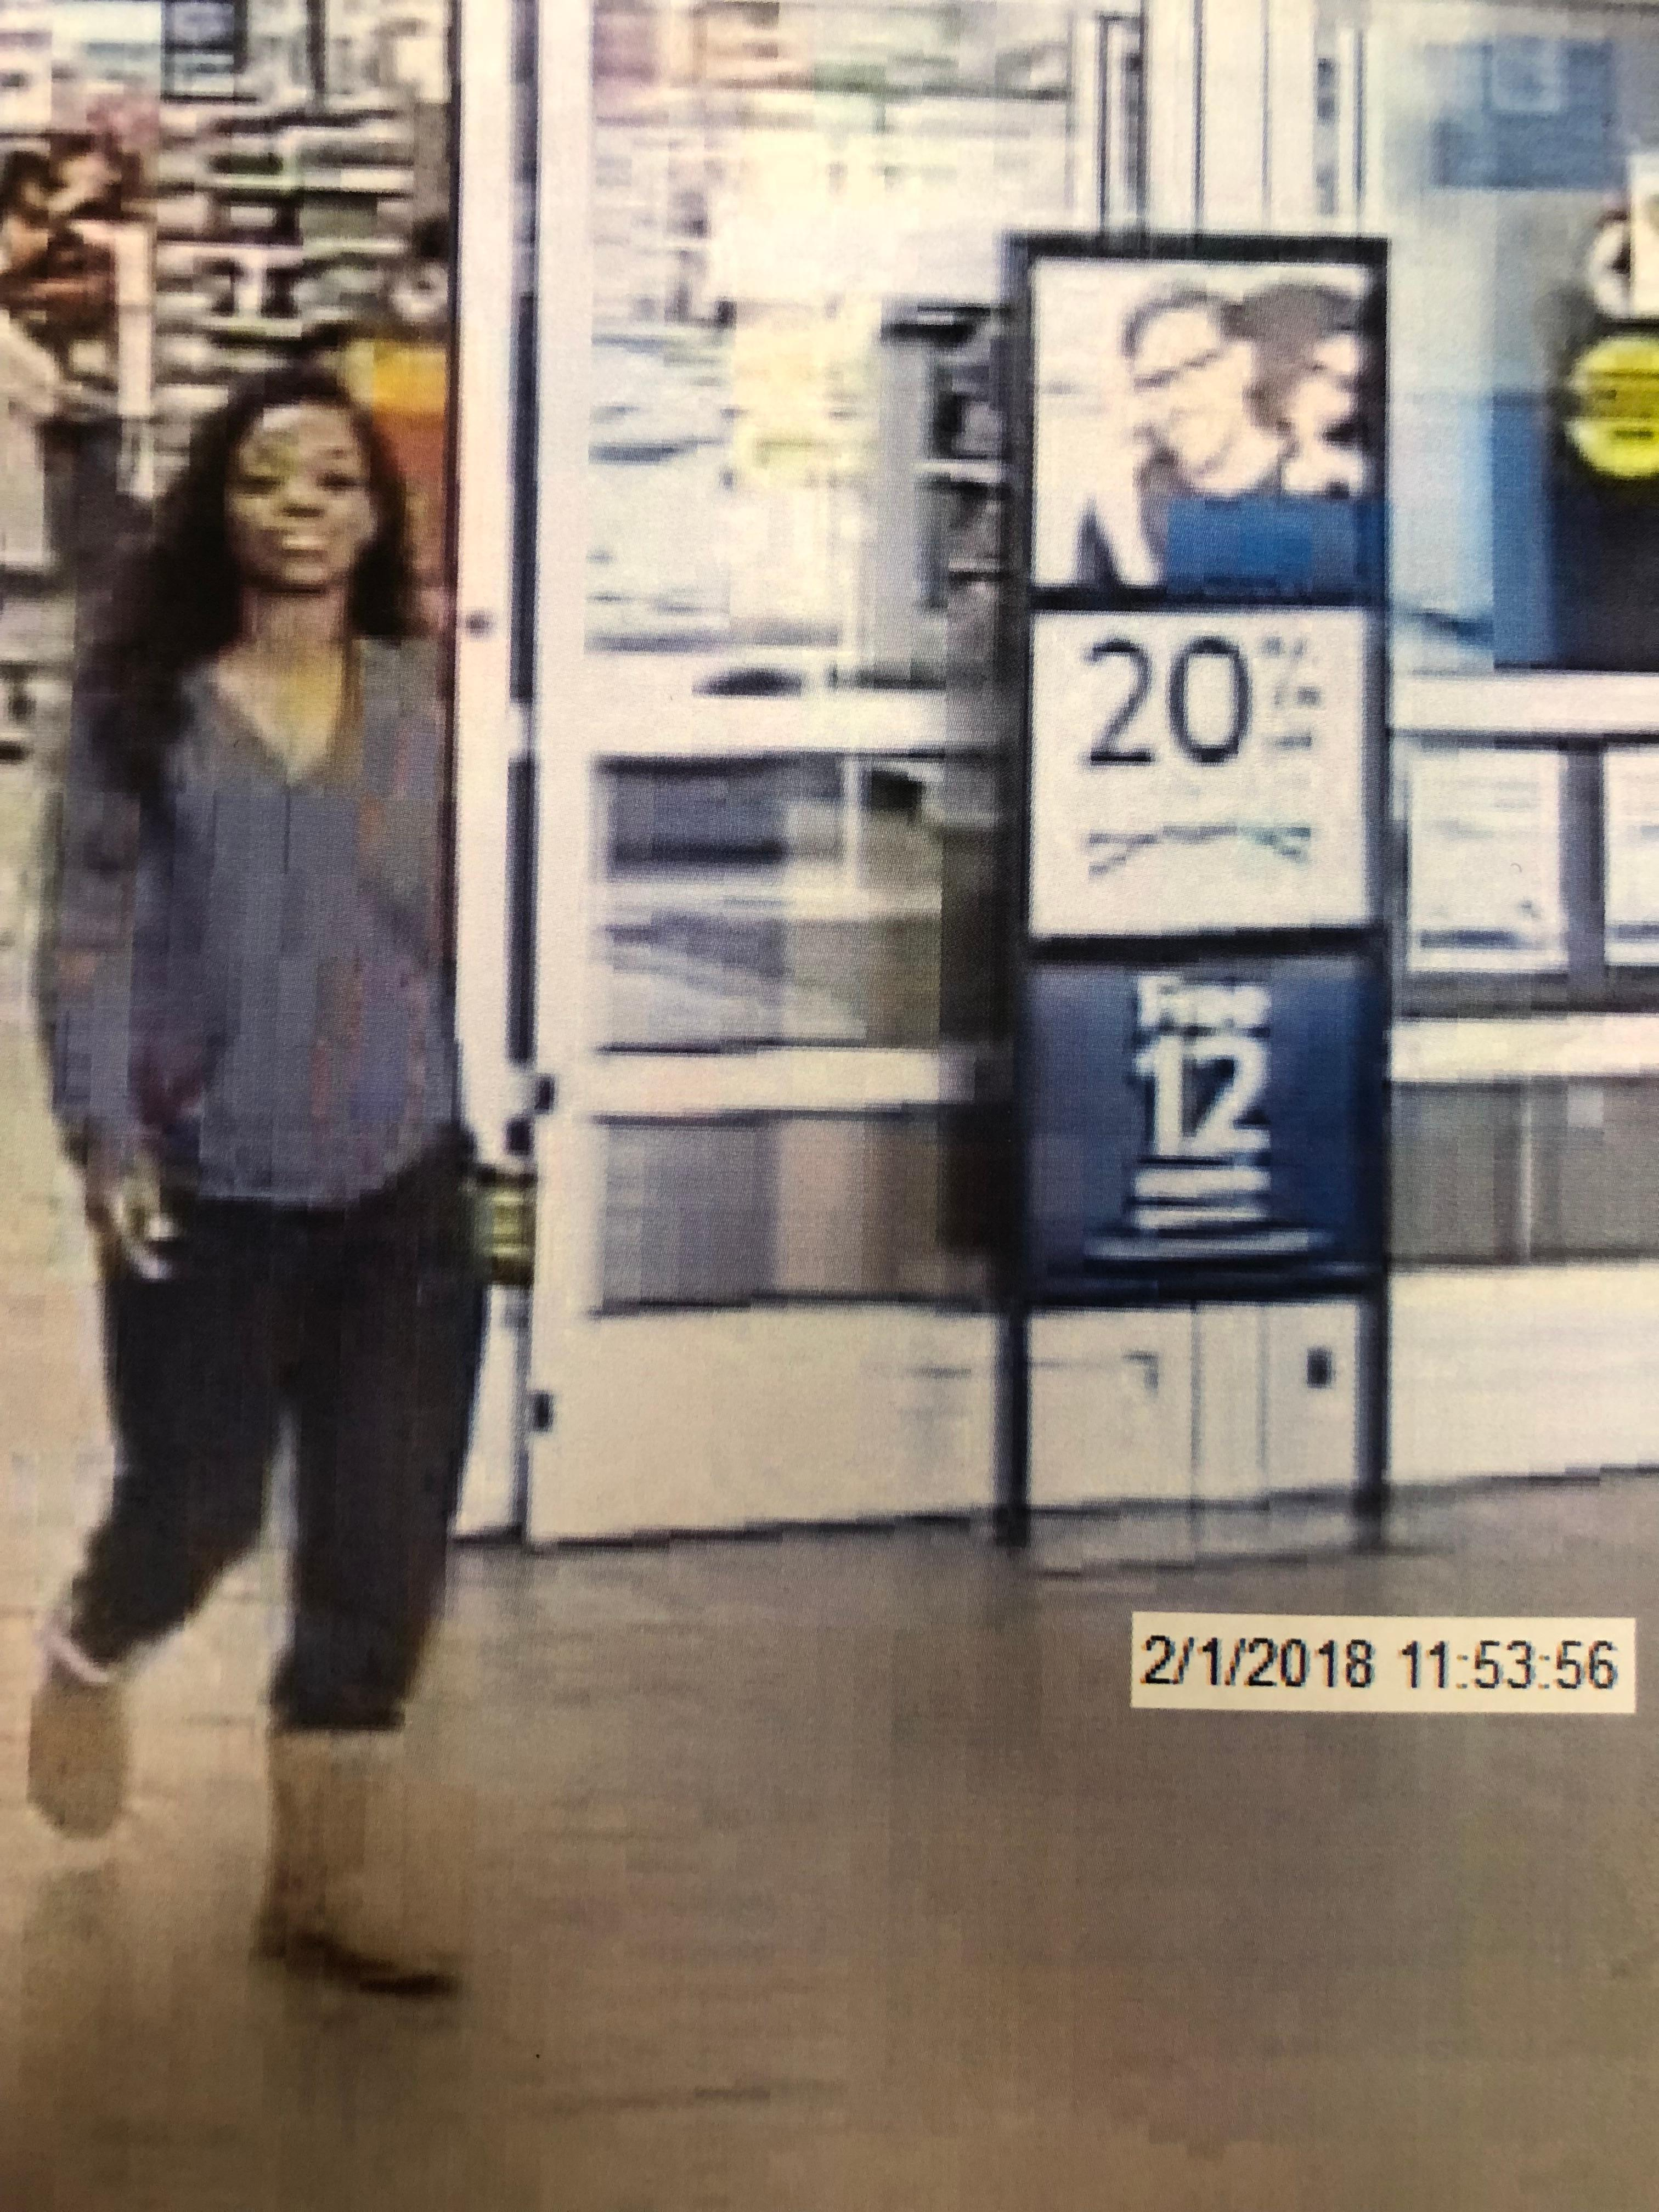 Police said the woman entered the Walmart around 12 p.m. on Thursday, February 1 and selected three Walmart gift cards, got the cashier to load $1,500 on them, and then left without paying (LPD)